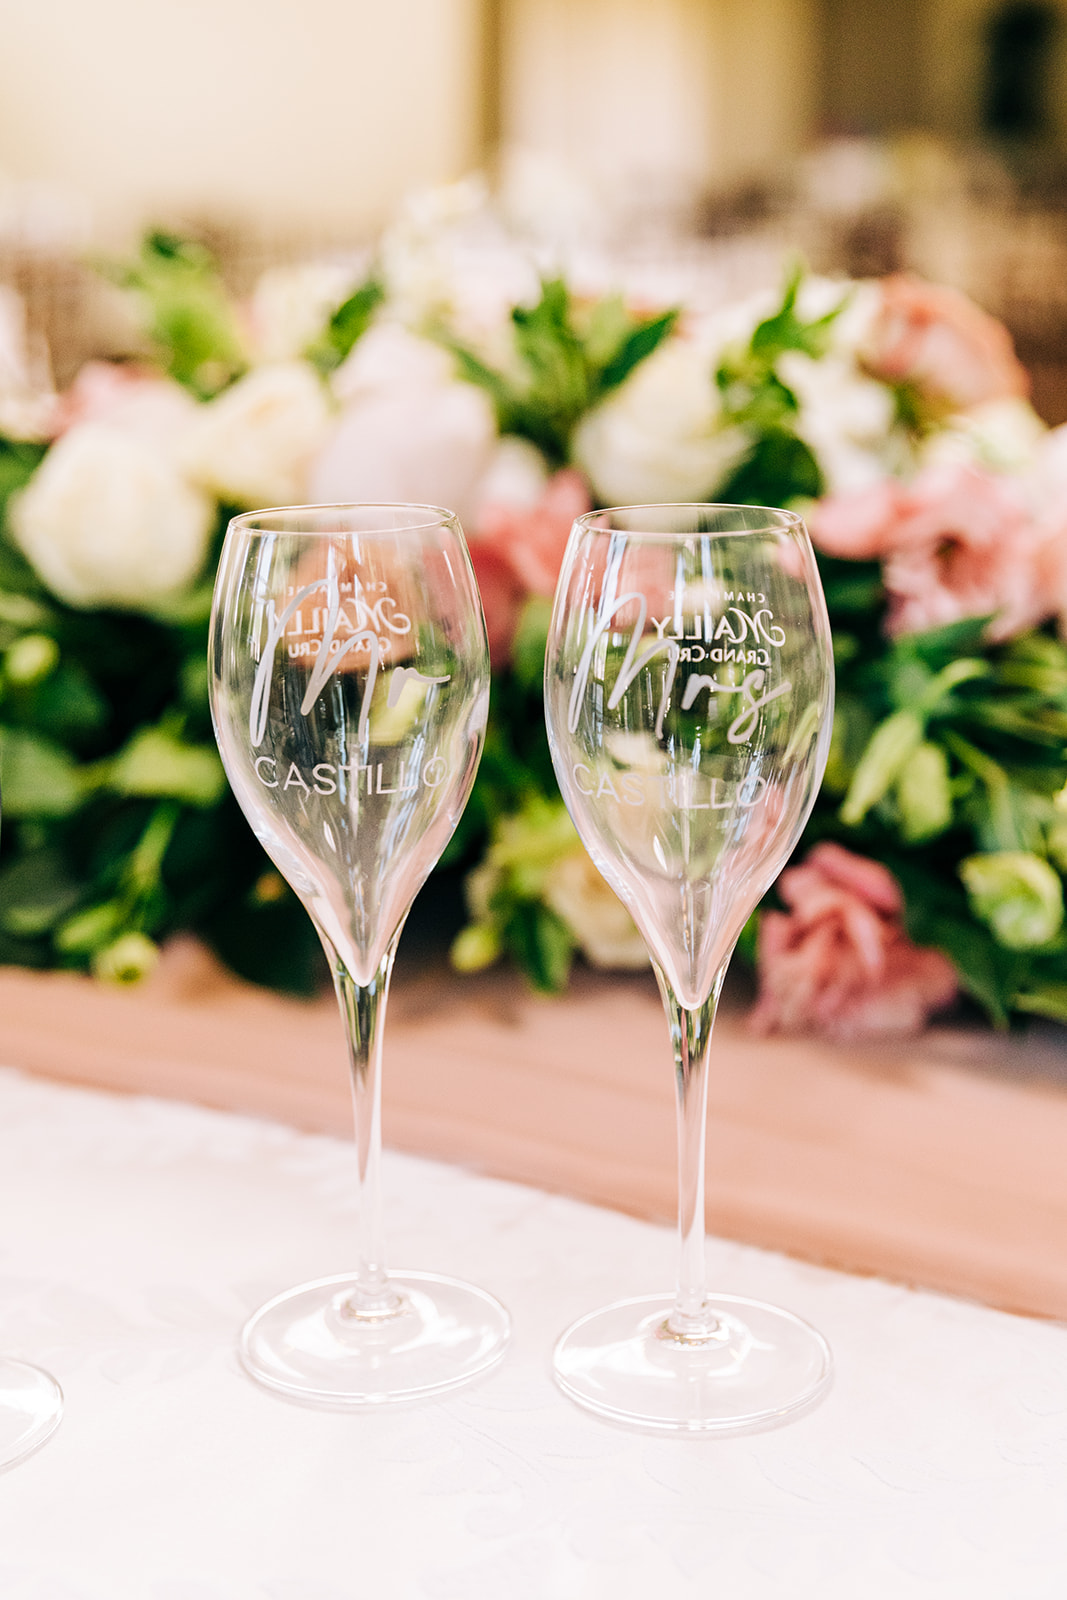 Glass details of the wedding day that the photographer captured.